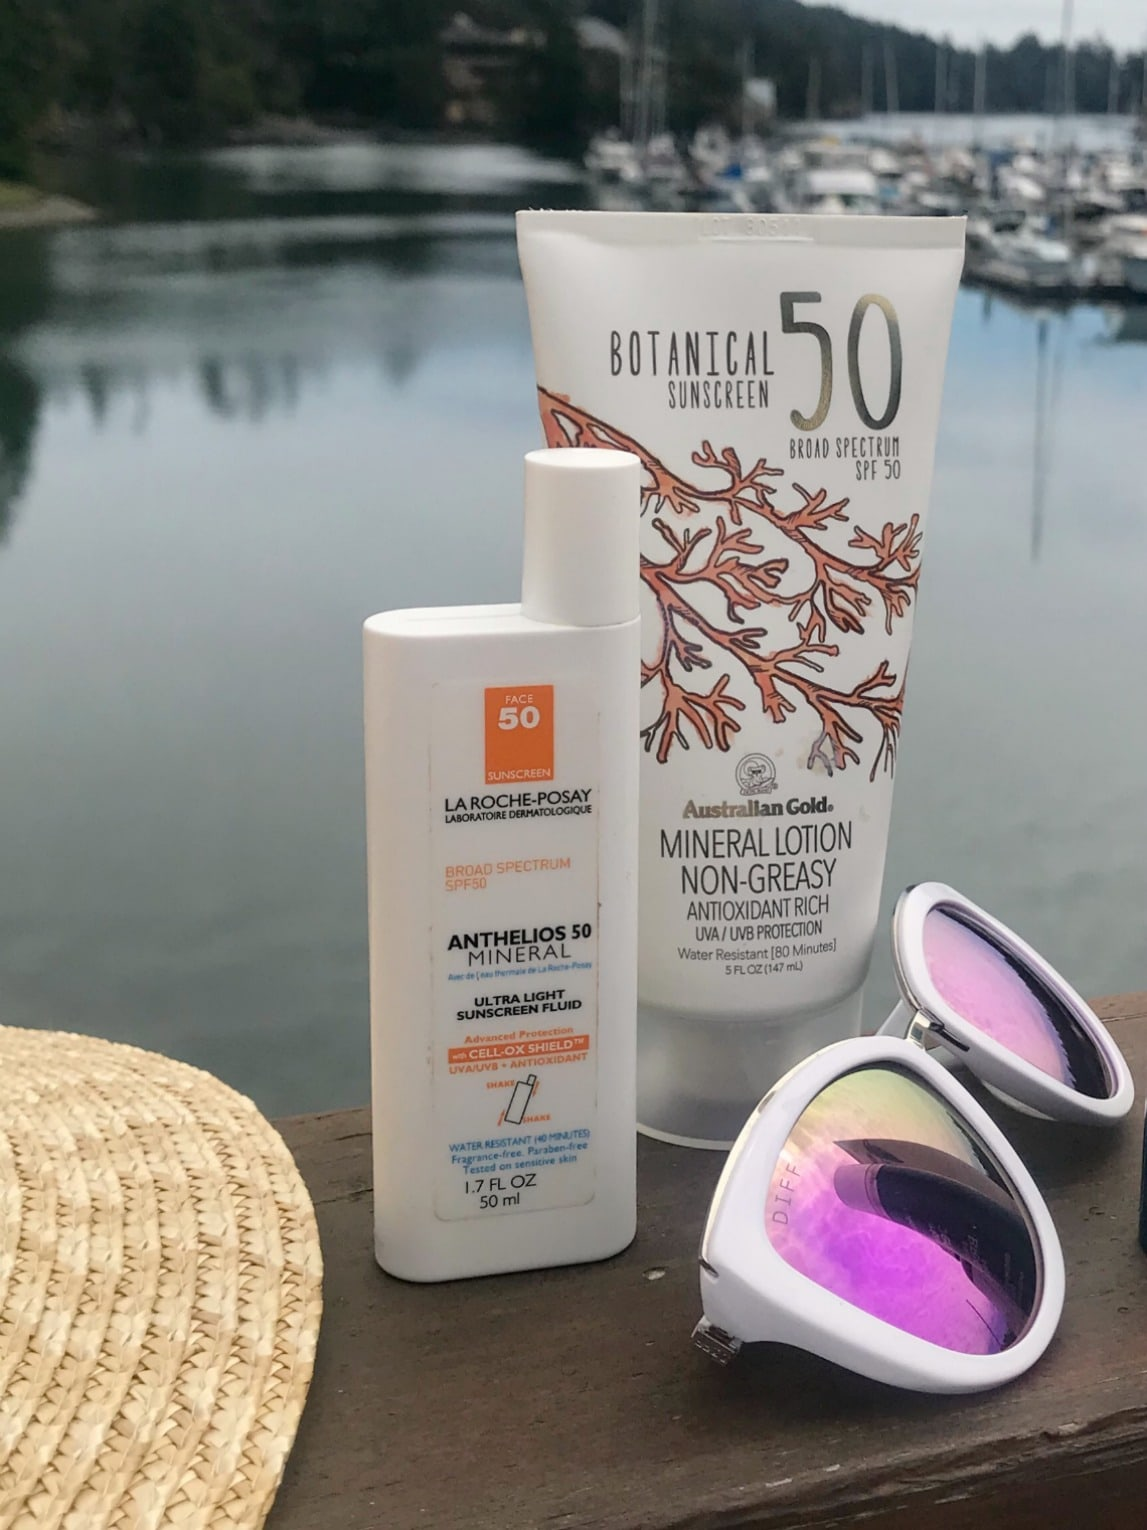 La Roche Posay and Australian Gold sunscreens